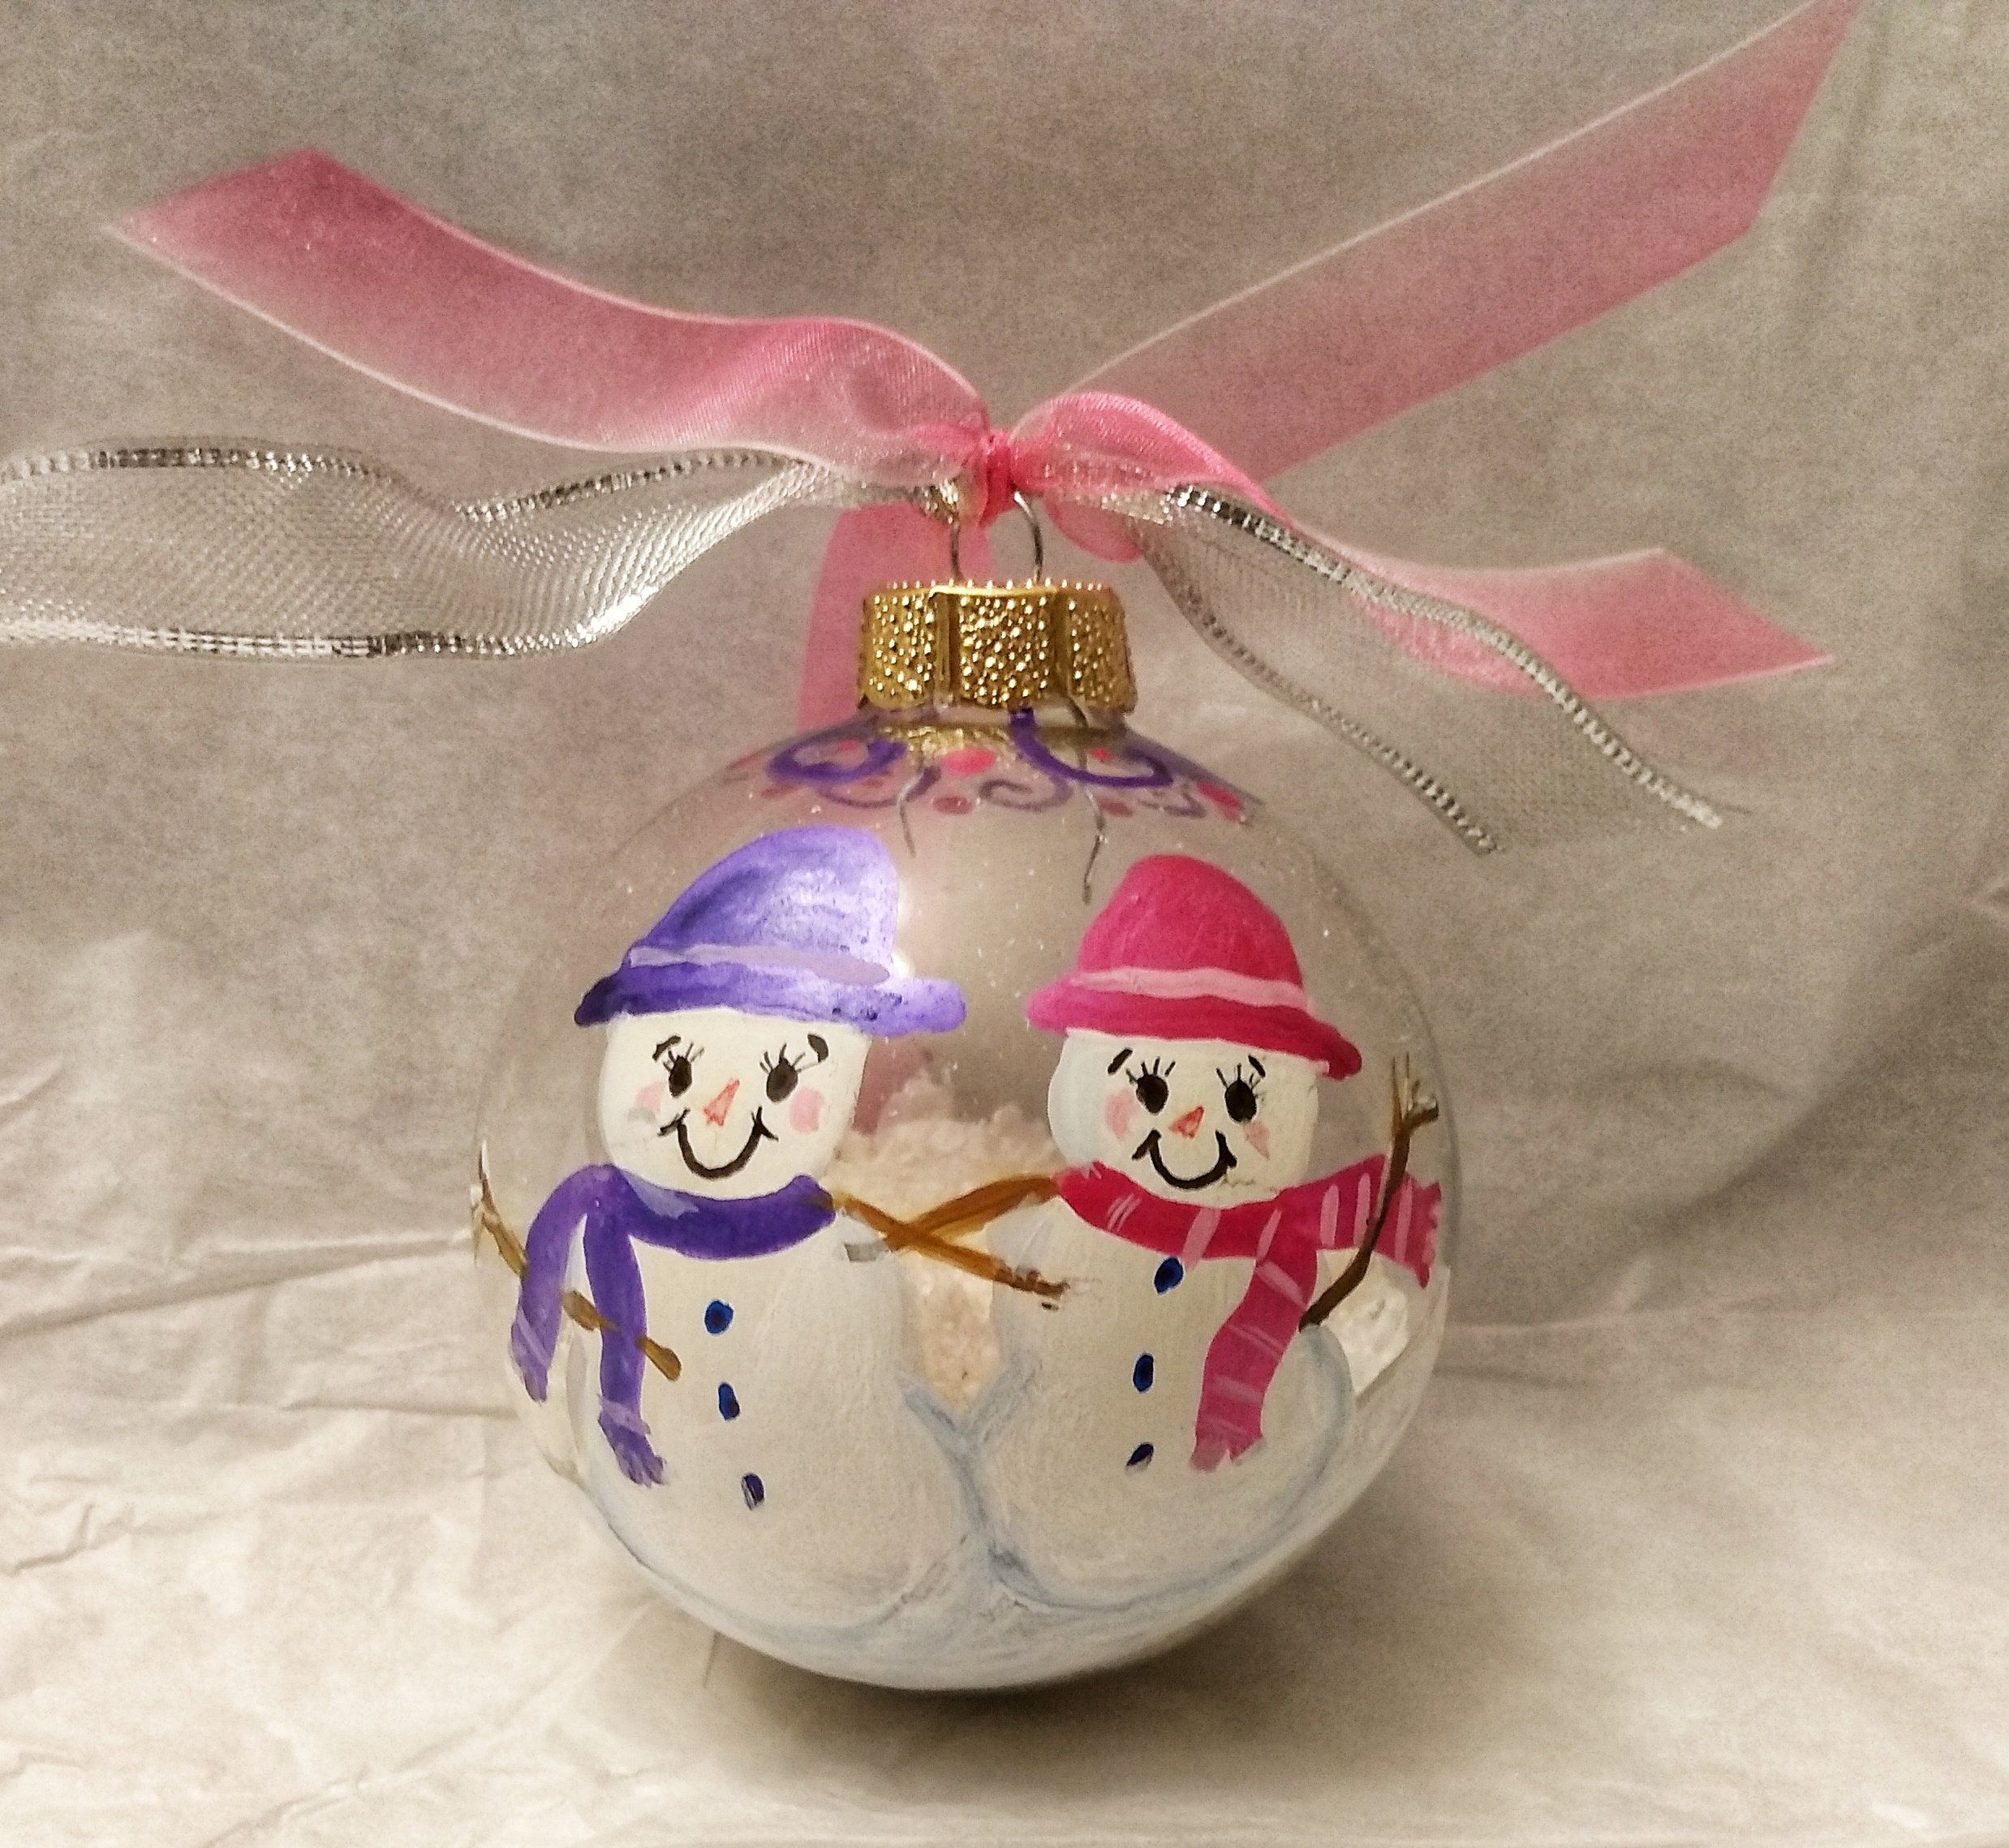 Best Friends Sisters Personalized Hand Painted Ornament By Rachaelsgarden On Etsy Personalized Christmas Ornaments Hand Painted Ornaments Painted Ornaments